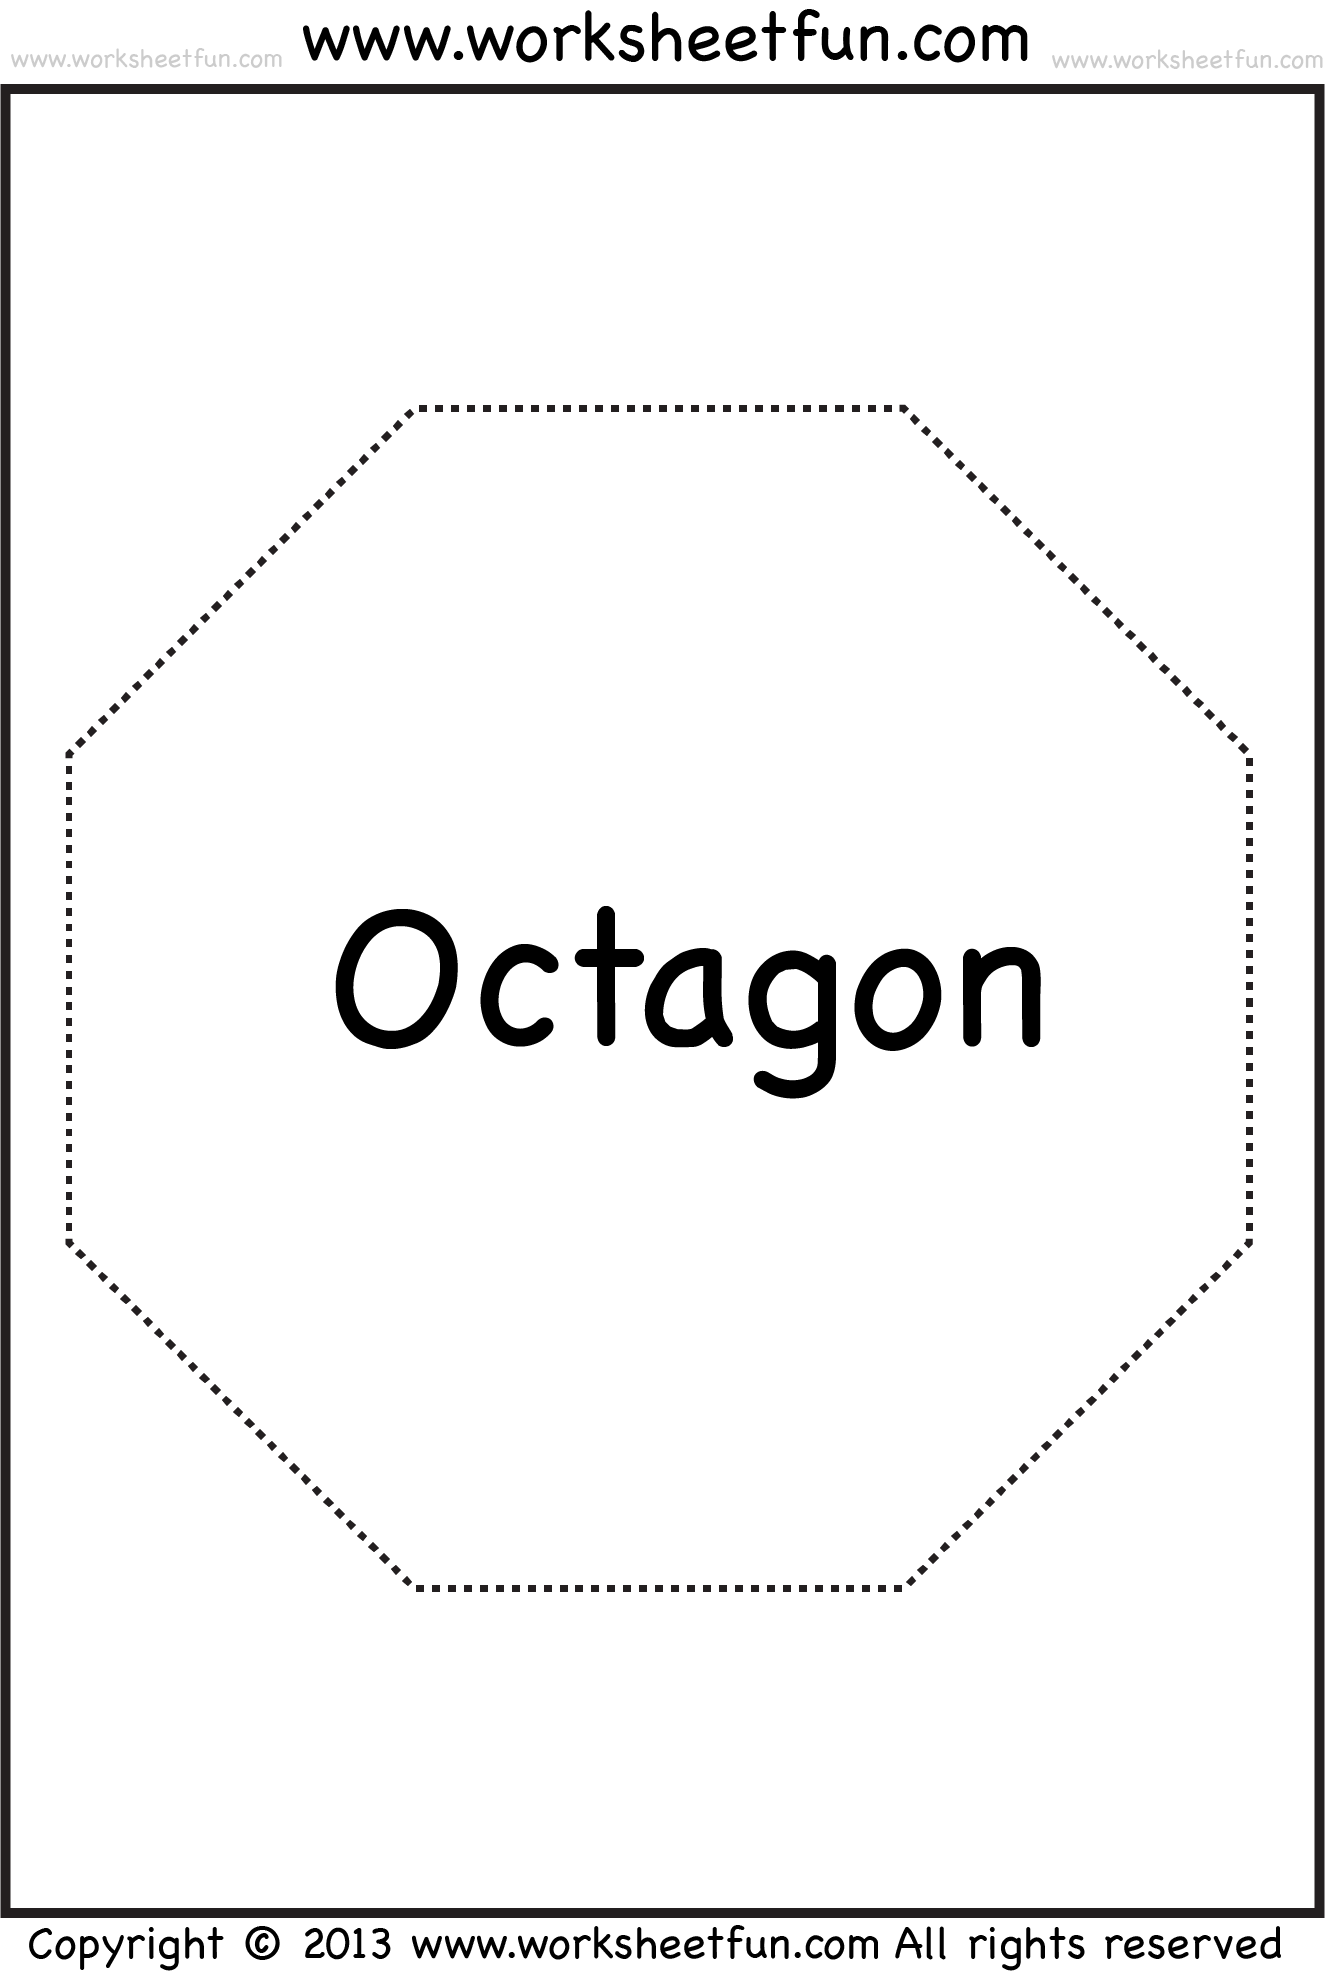 Octagon  Math    Worksheets Shapes Worksheets And